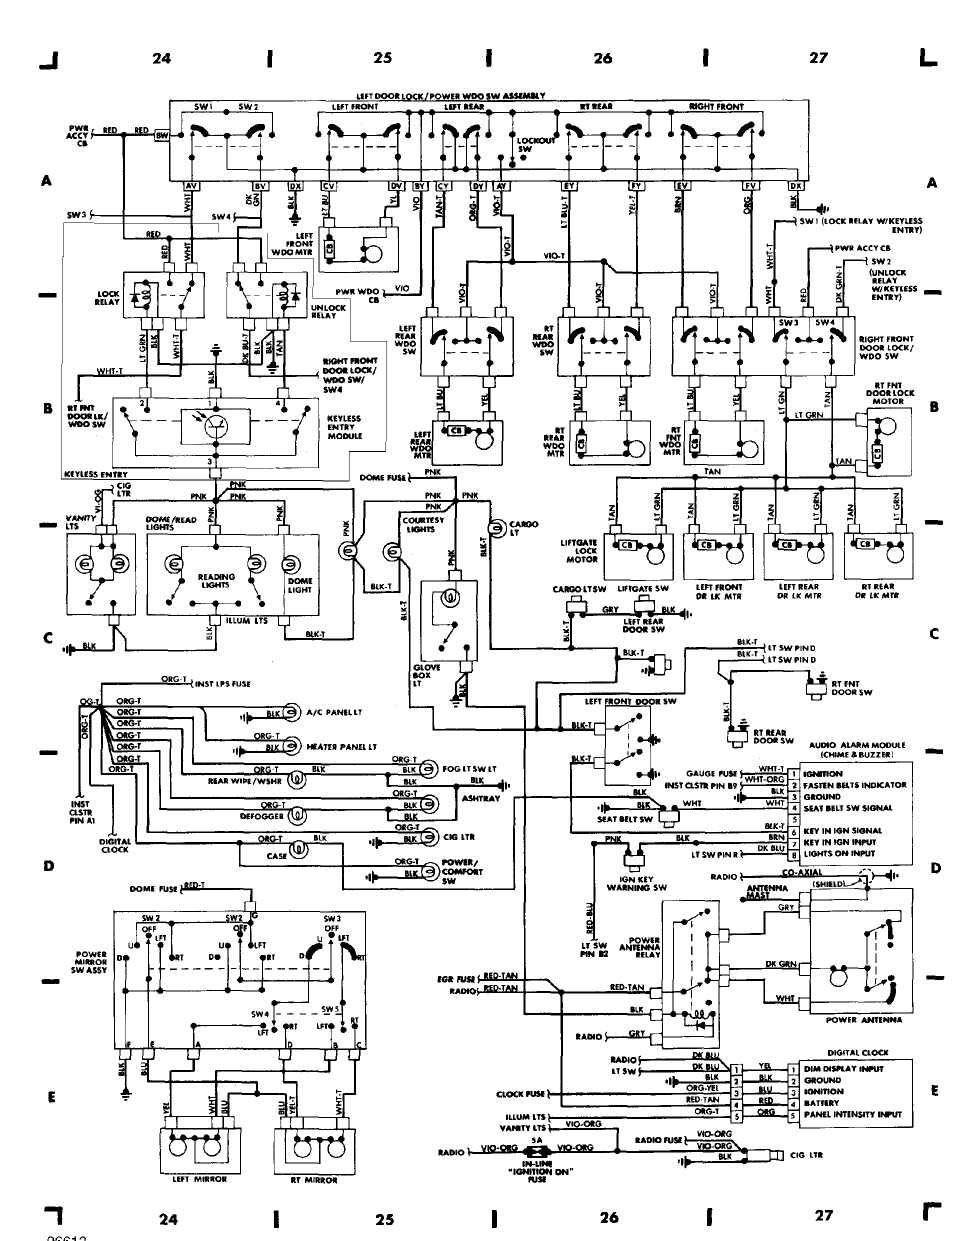 wiring_diagrams_html_61f5e0ad wiring diagrams 1984 1991 jeep cherokee (xj) jeep 2000 Jeep Cherokee Wiring Harness Diagram at honlapkeszites.co